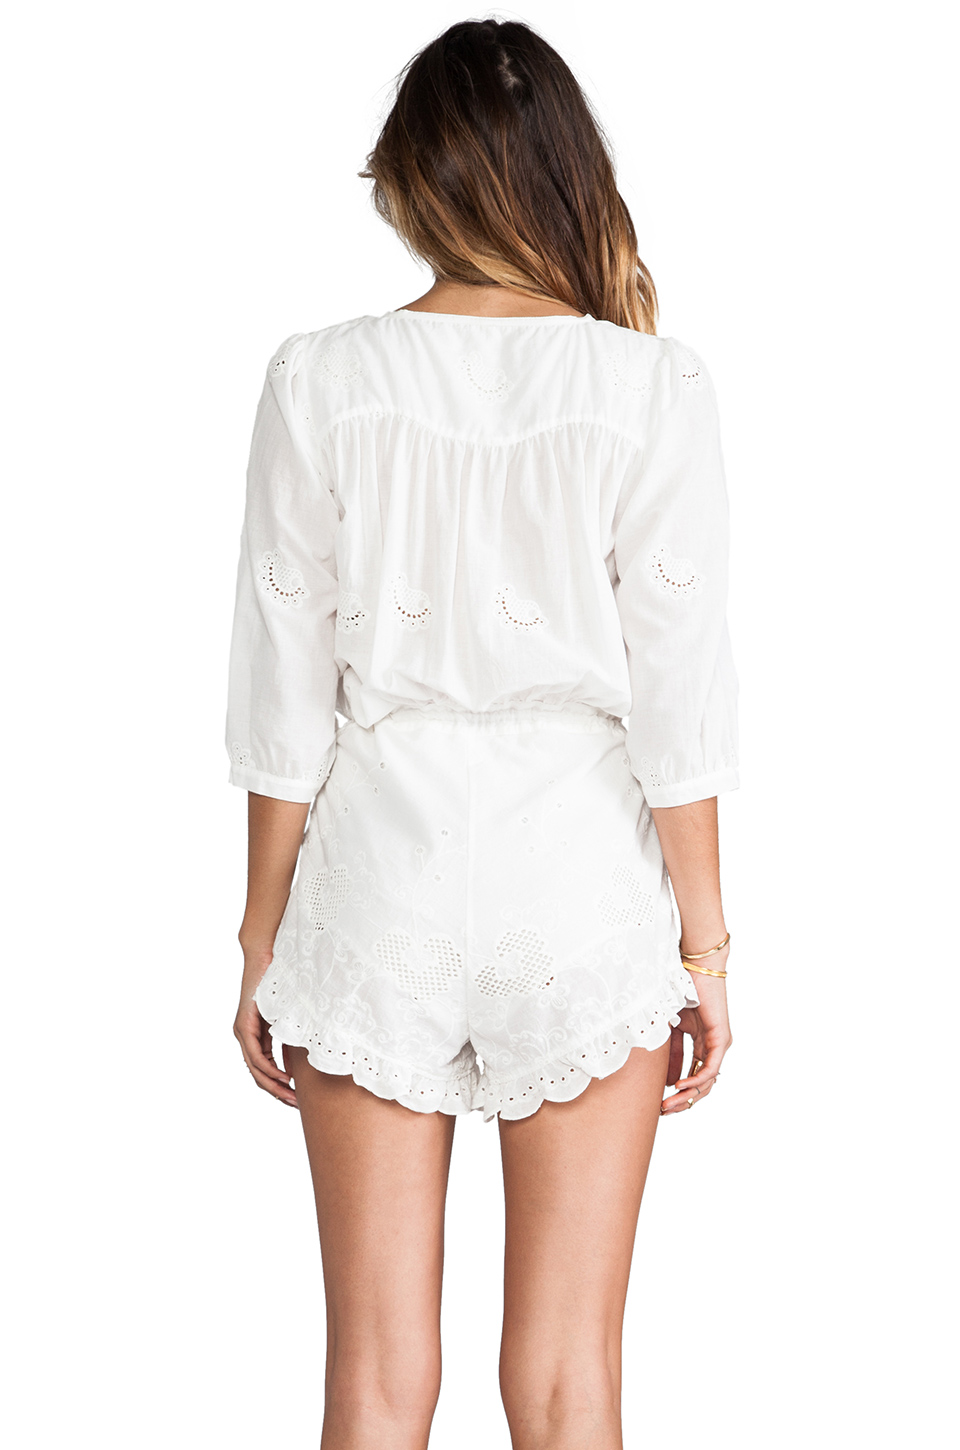 Spell & The Gypsy Collective Indian Summer Playsuit in White | REVOLVE